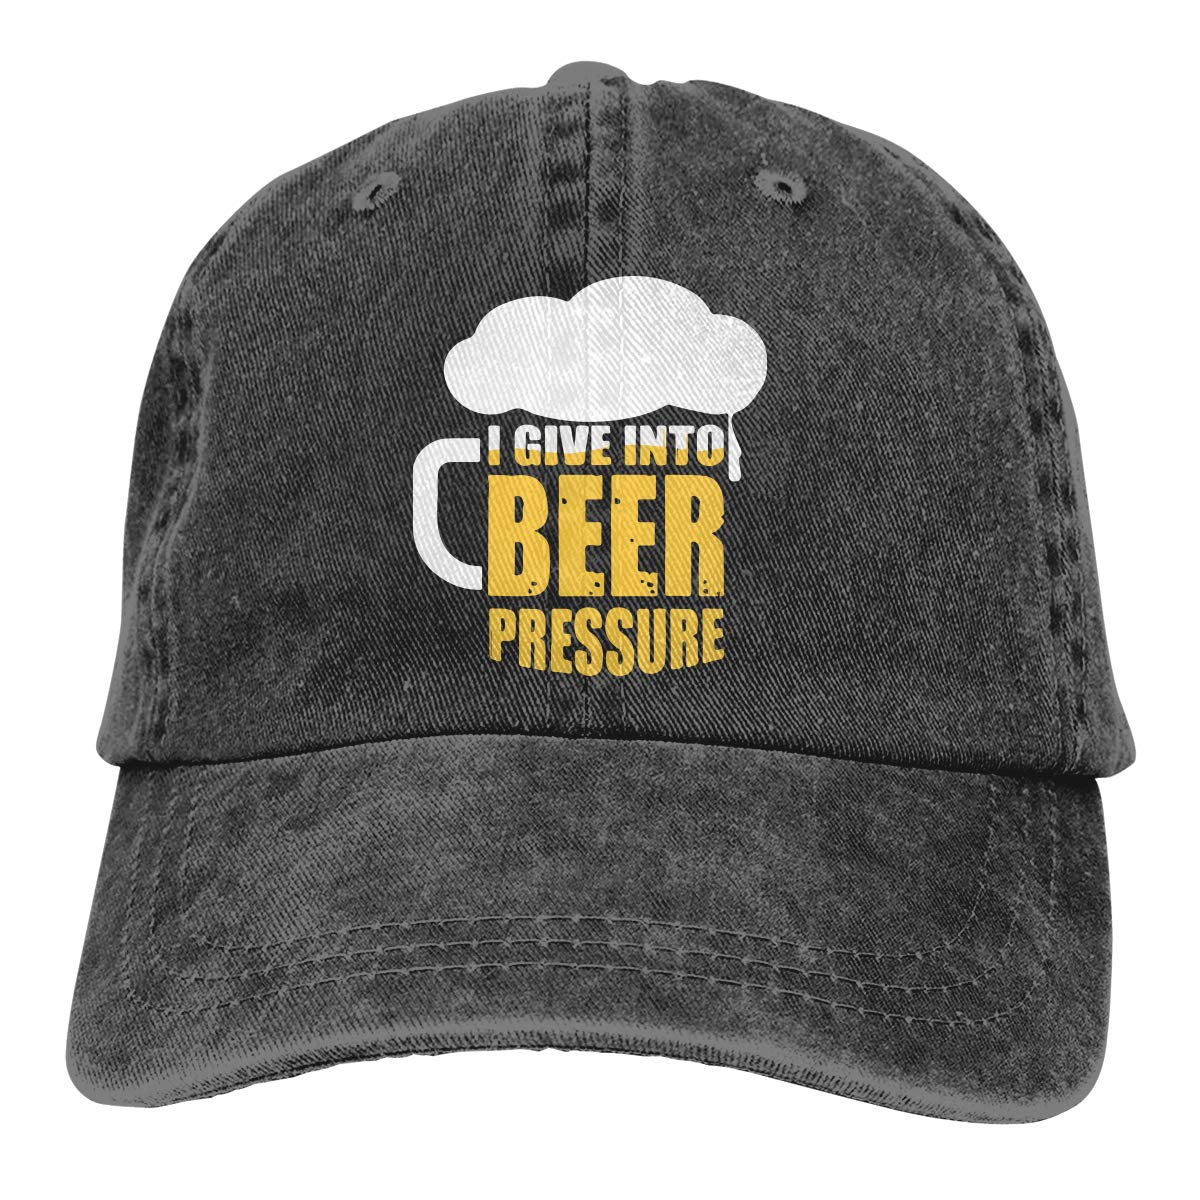 PMGM-C I Give Into Beer Unisex Personalize Jeans Outdoor Sports Hat Adjustable Baseball Cap